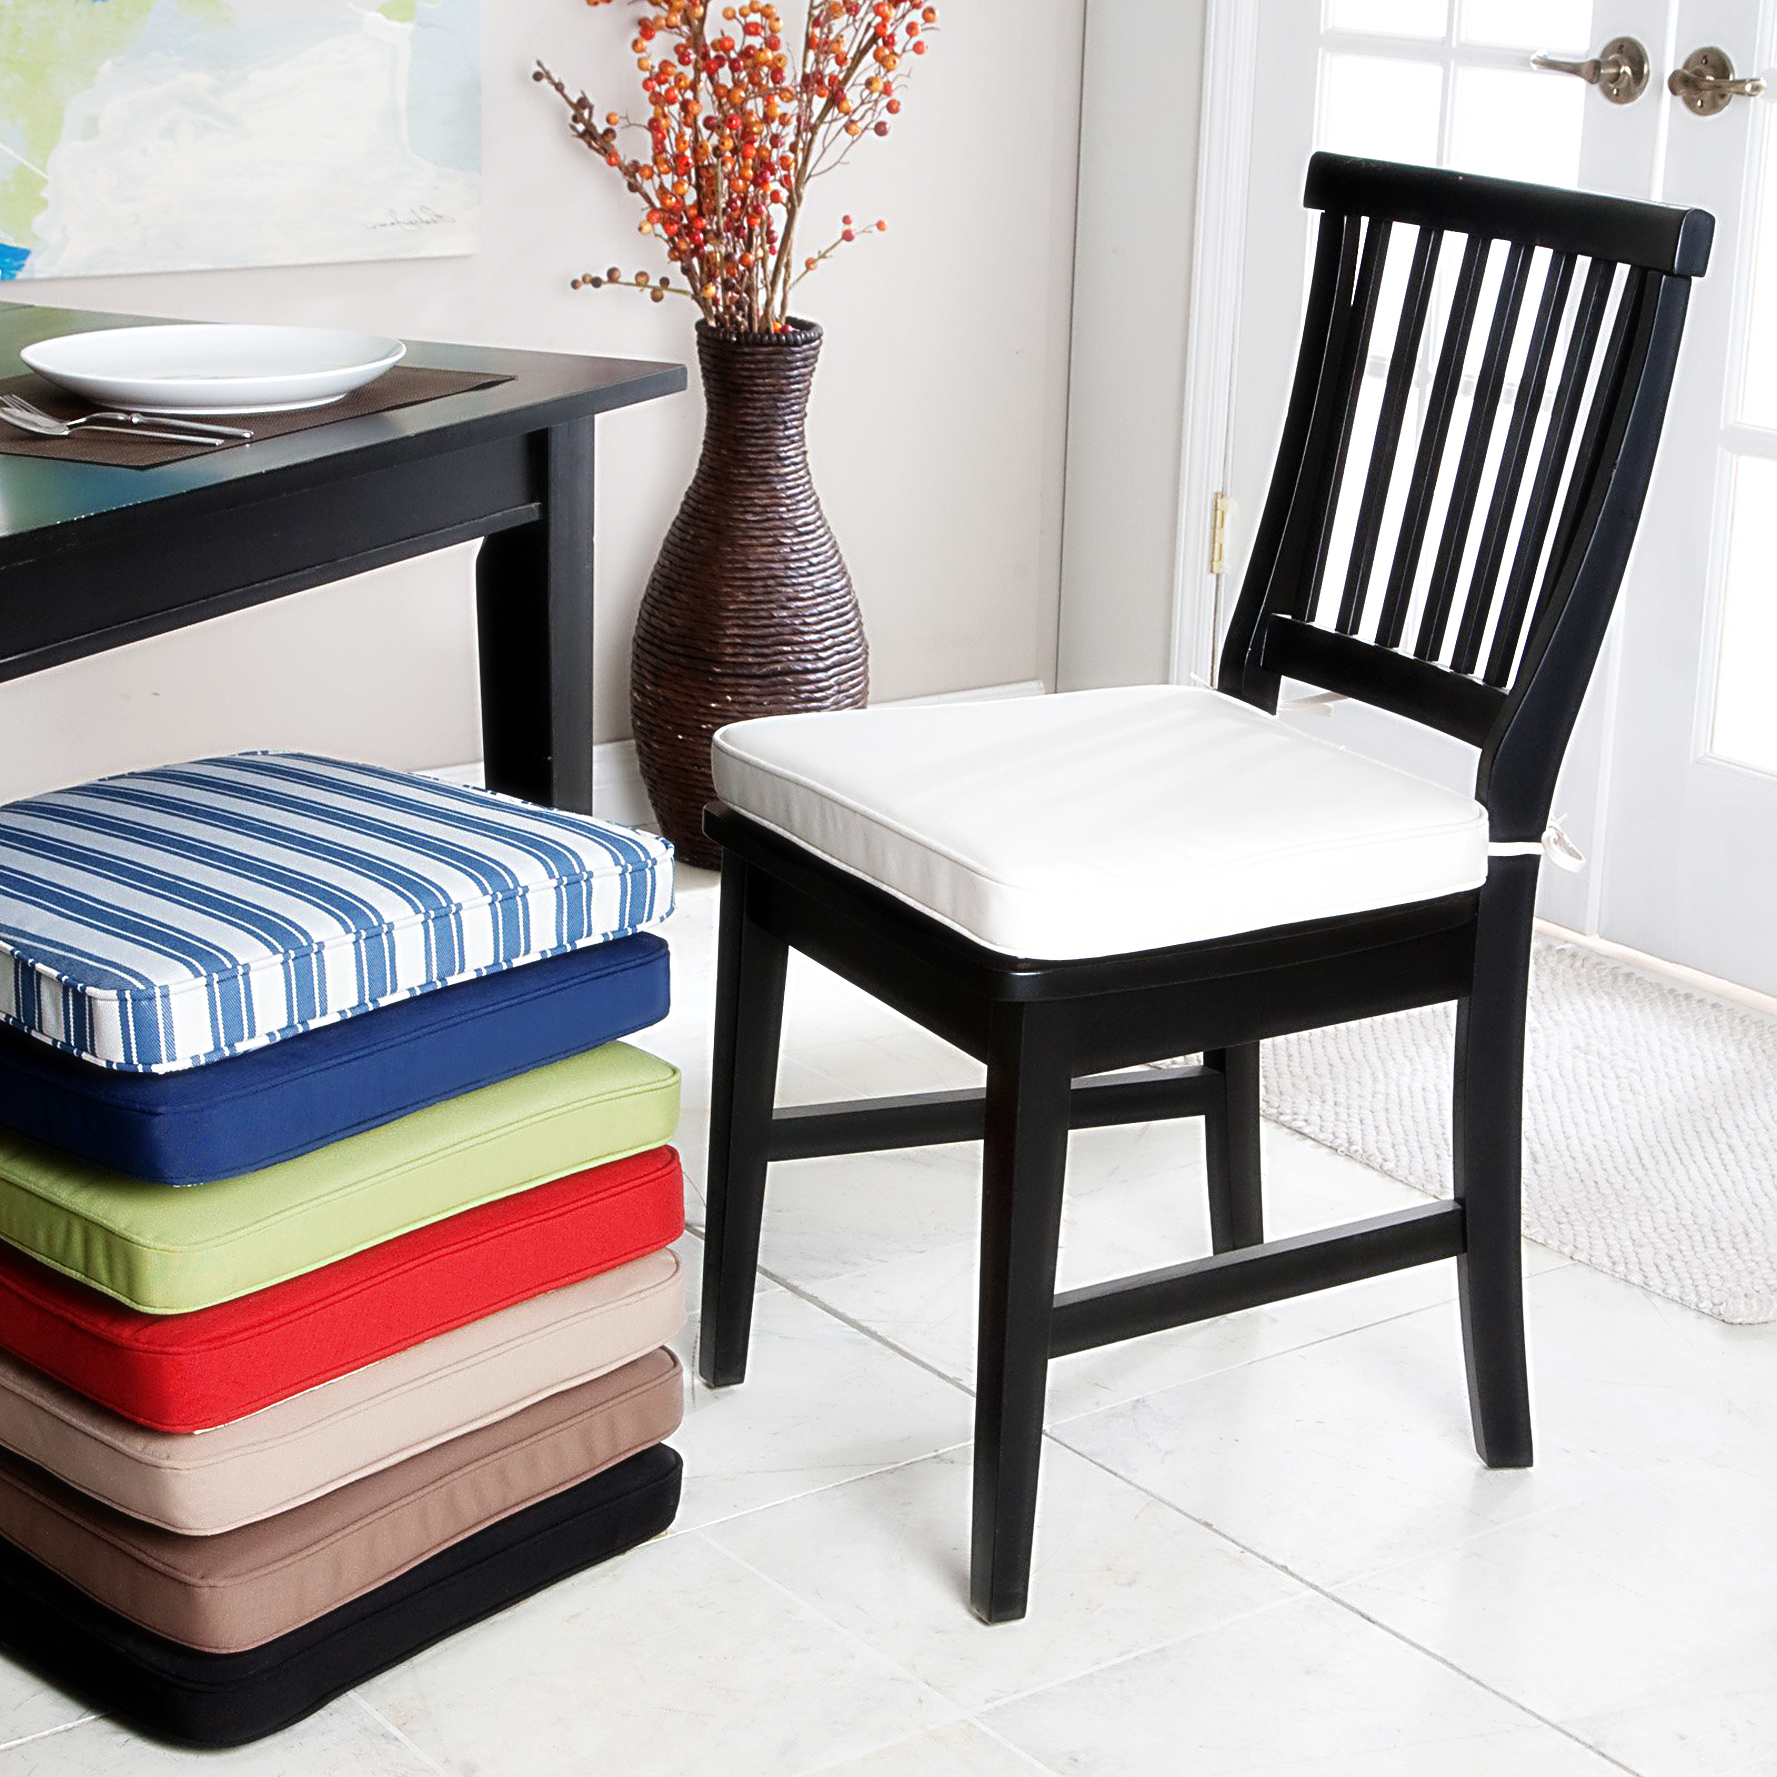 Brand-new Kitchen Chair Cushions with Ties | HomesFeed NA89